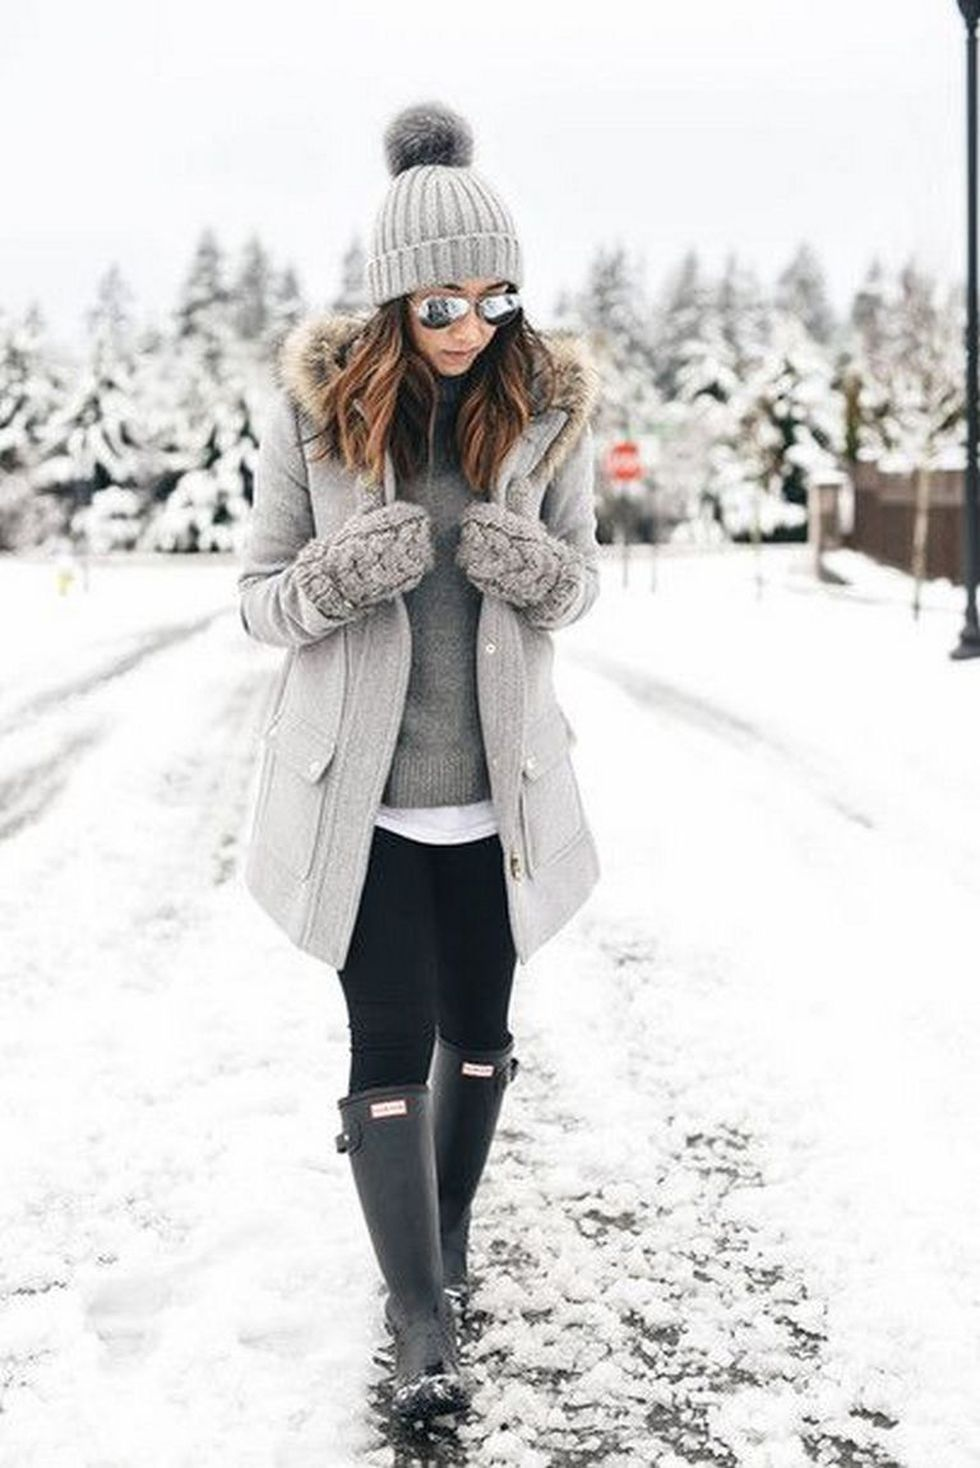 Fashionable women snow outfits for this winter 25 ...